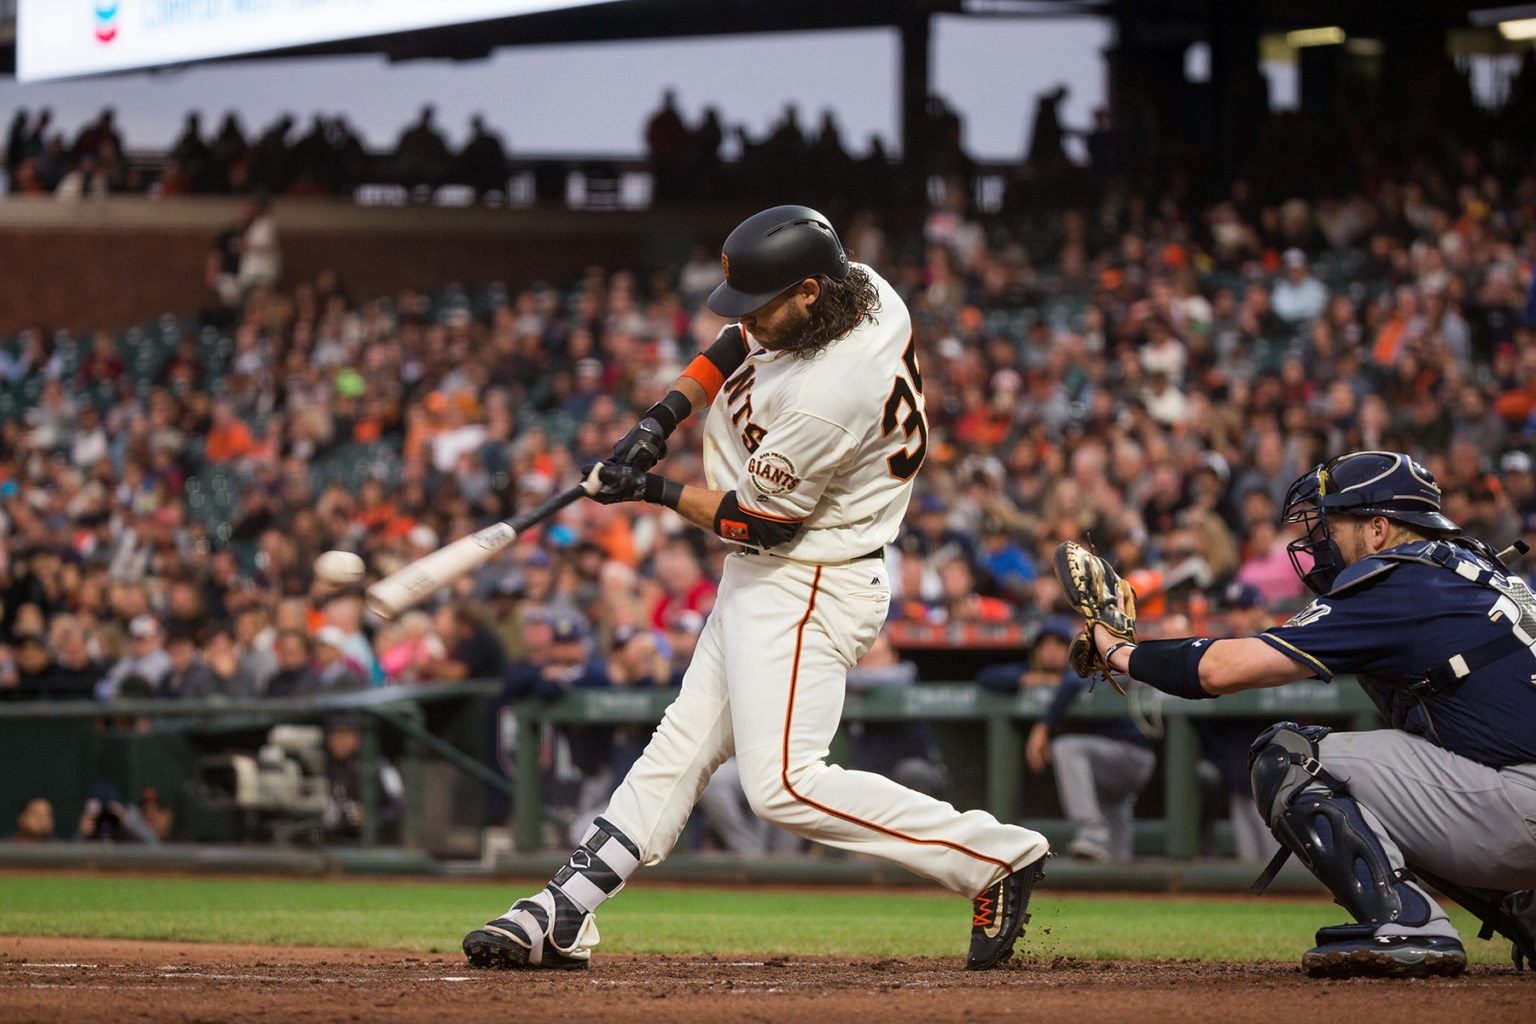 San Francisco Giants shortstop Brandon Crawford (35) hits a foul ball against the Milwaukee Brewers at AT&T Park in San Francisco, California, on August 21, 2017. (Stan Olszewski/Special to S.F. Examiner)